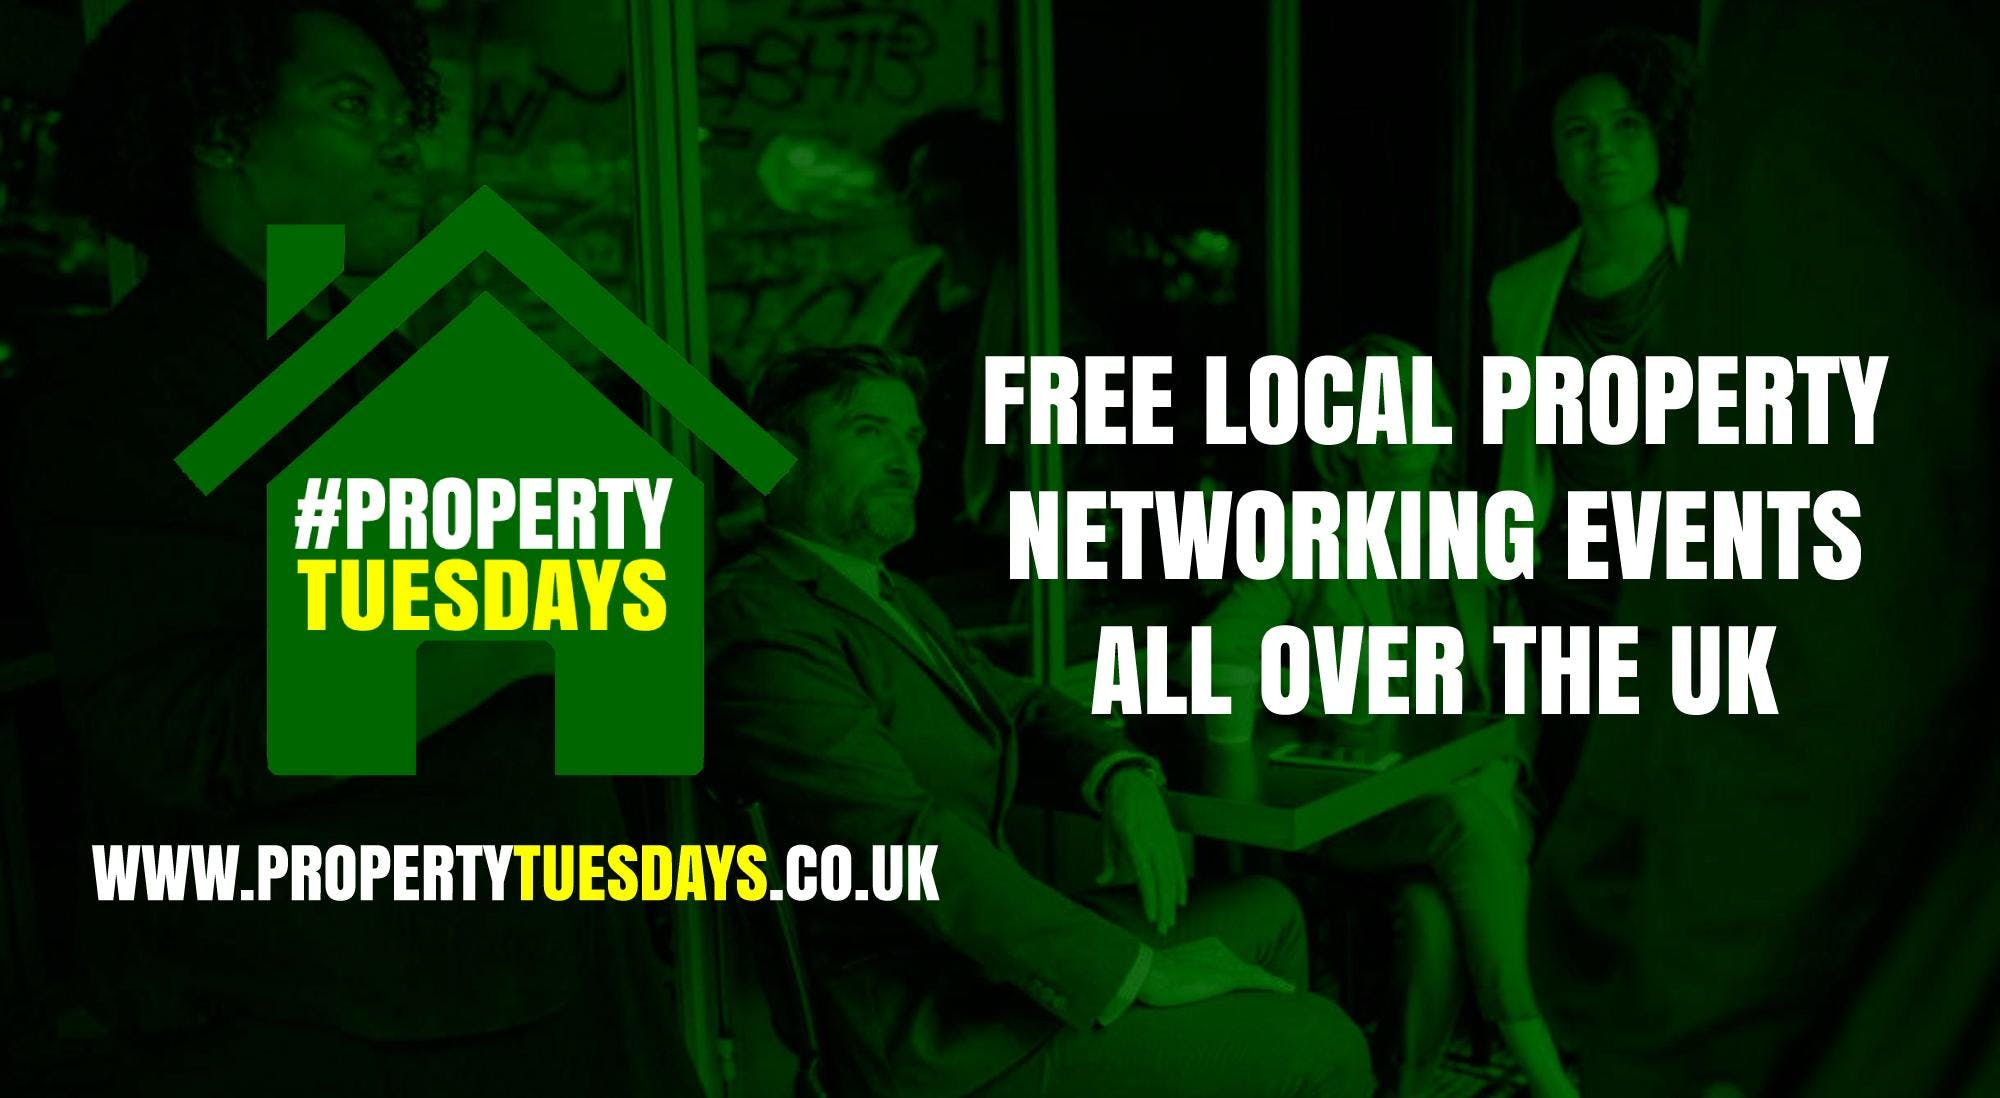 Property Tuesdays! Free property networking event in Leytonstone